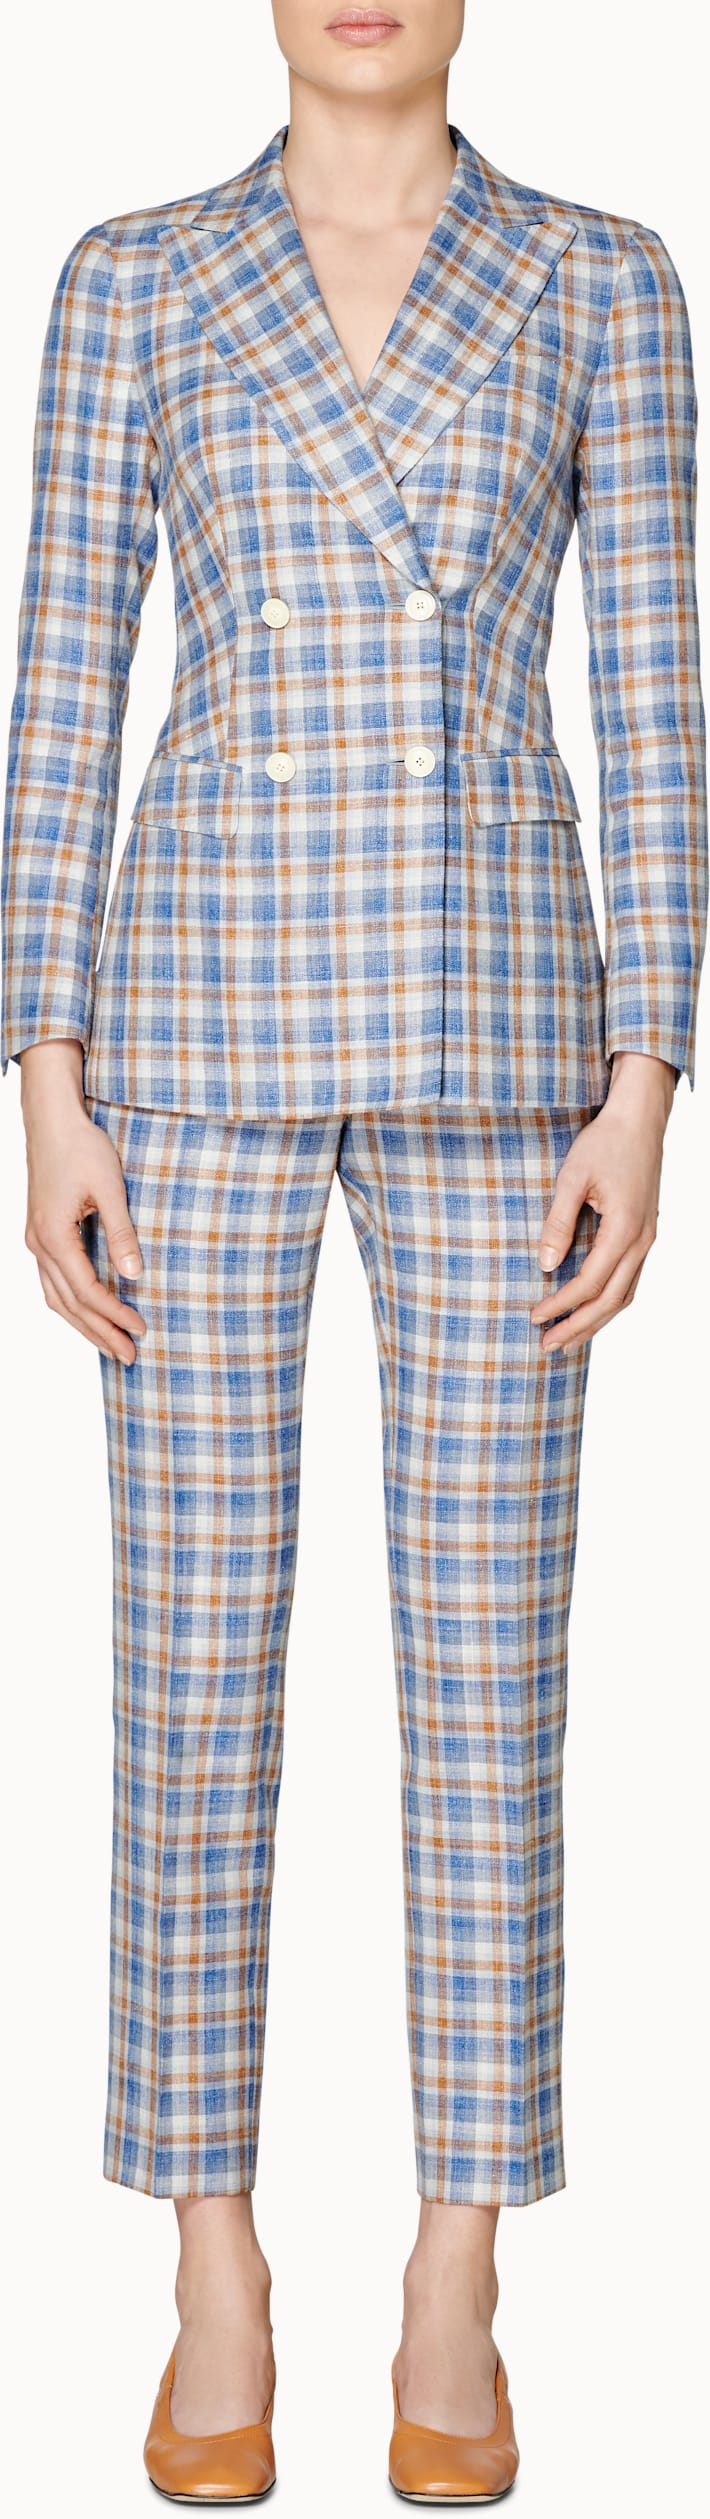 Cameron 4-Button Blue & Brown Checked Suit